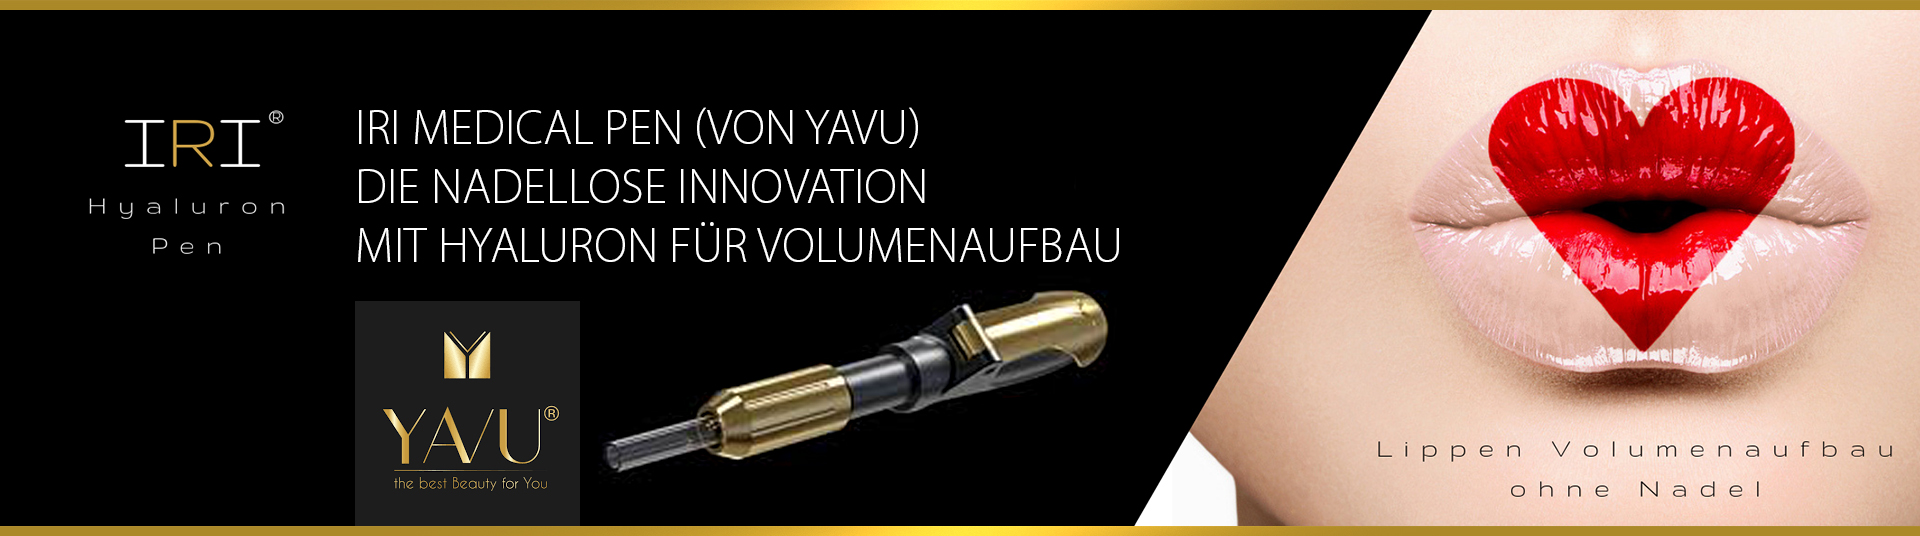 IRI Medical Pen von Yavu